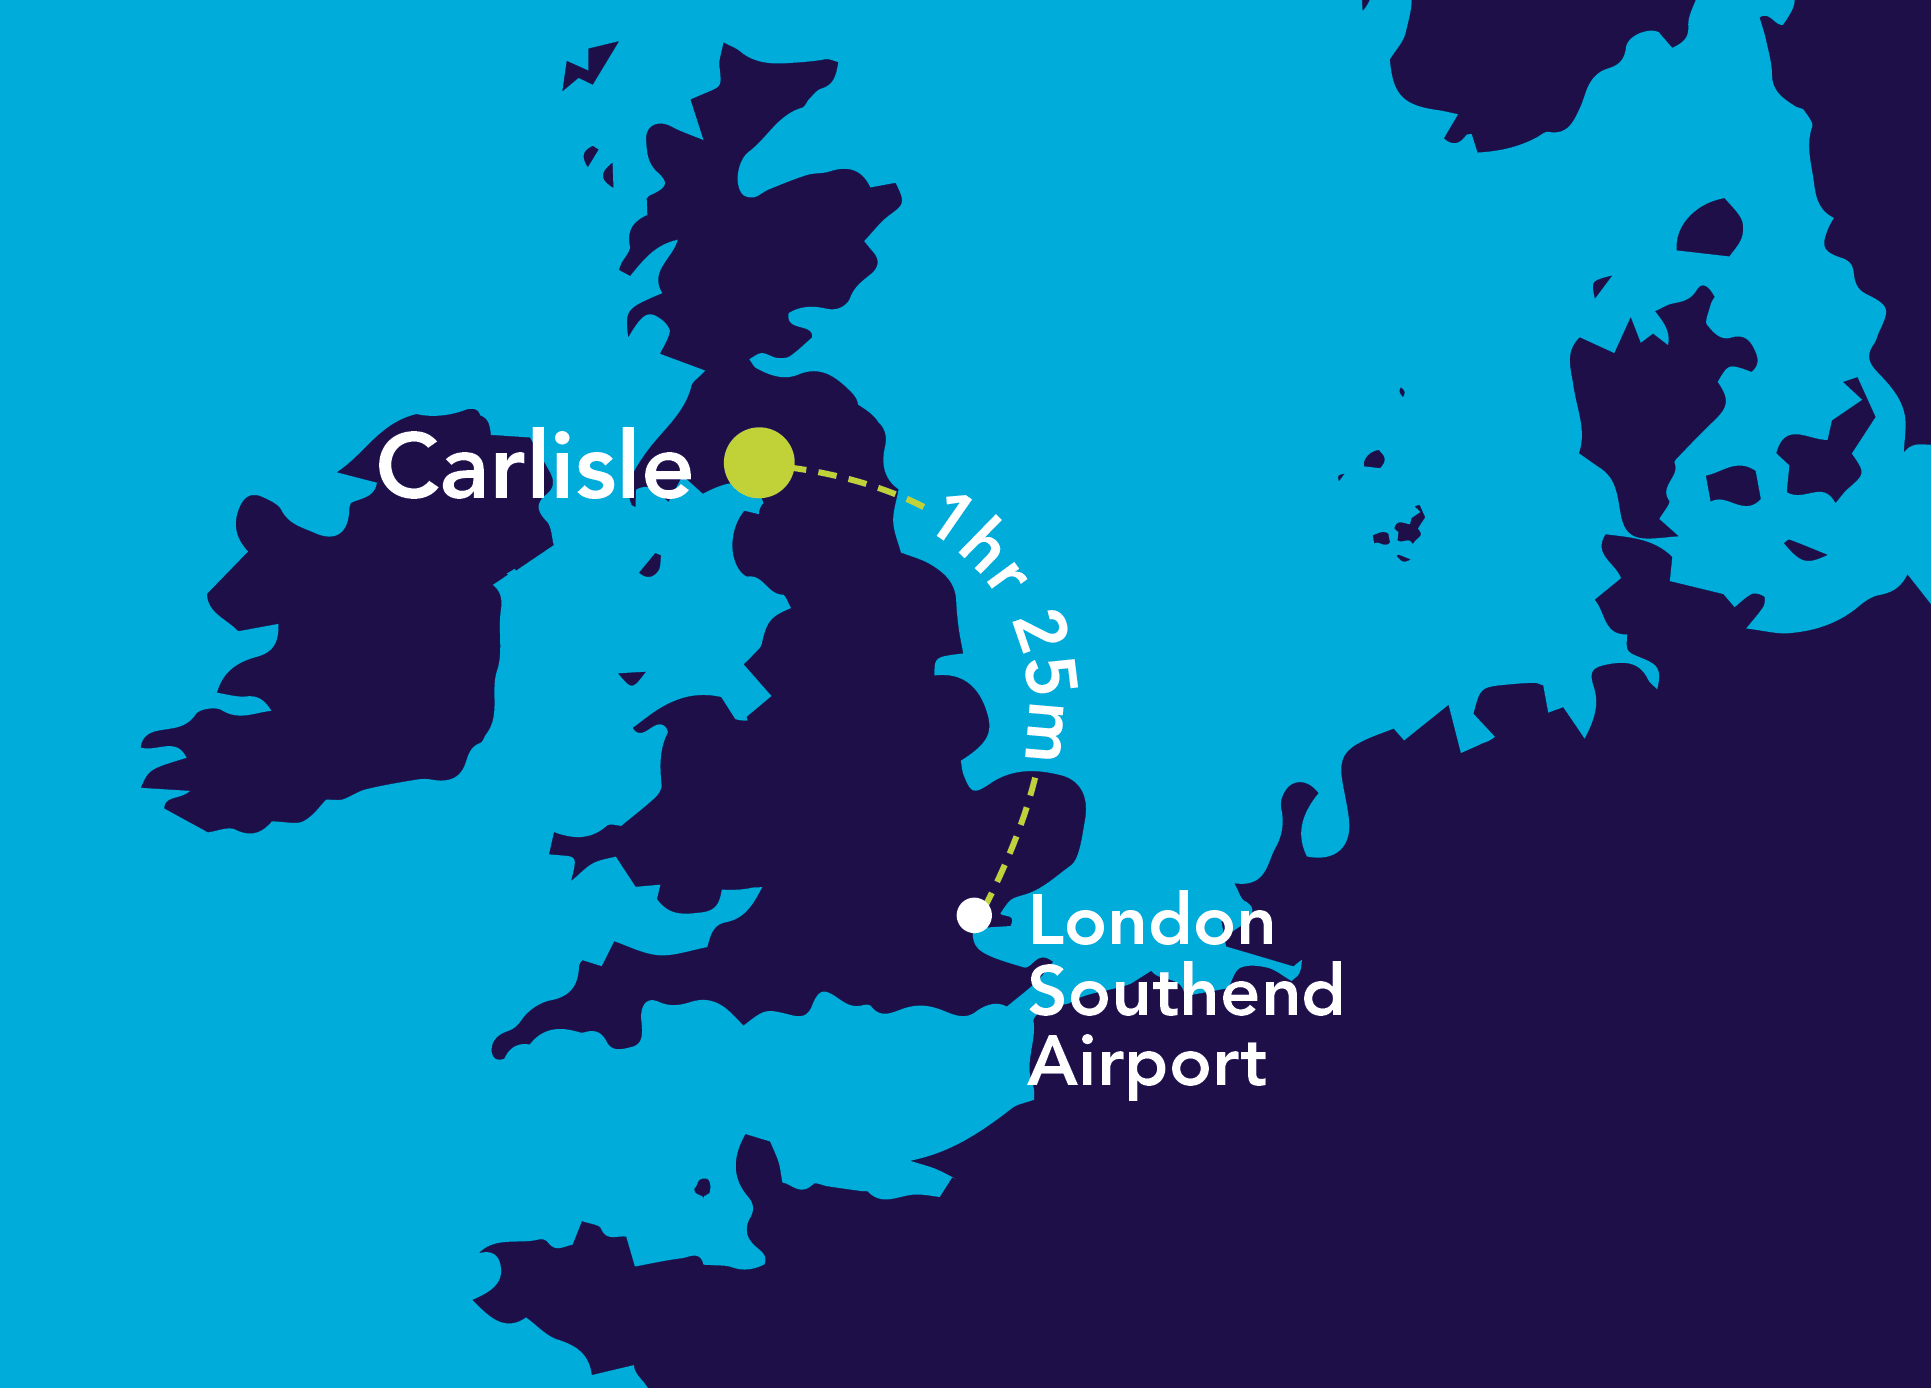 Image of London Southend Airport to Carlisle